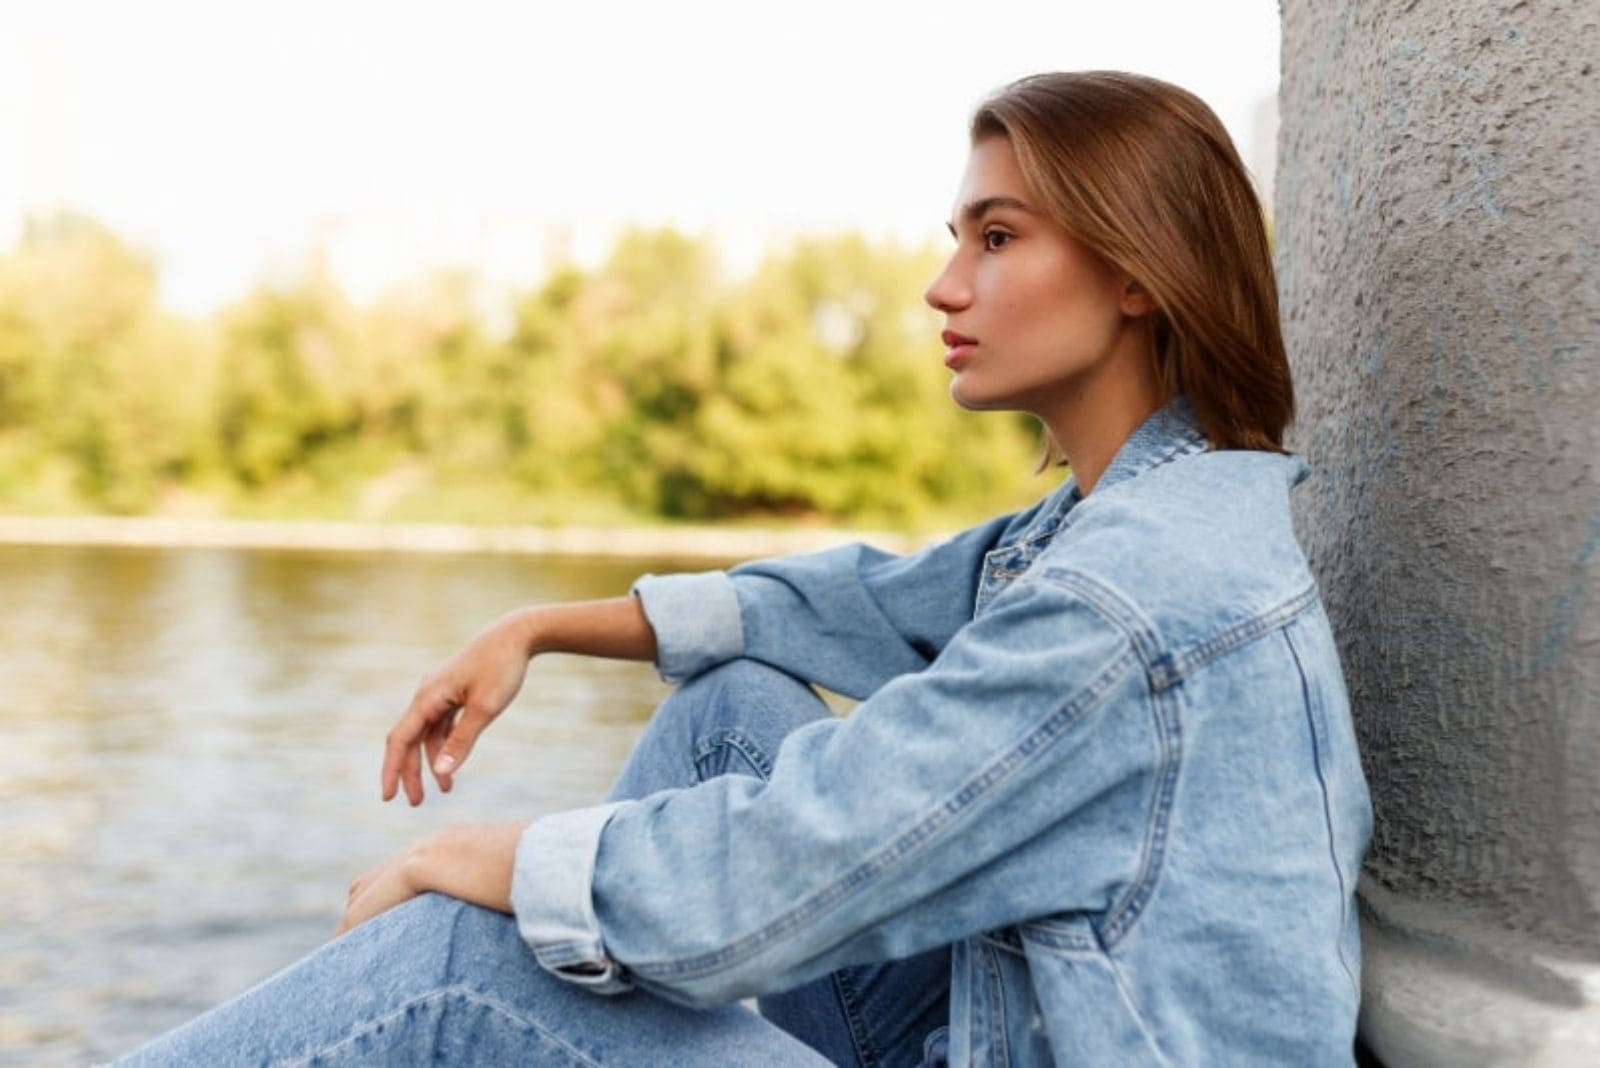 pensive woman sitting under the bridge by the river